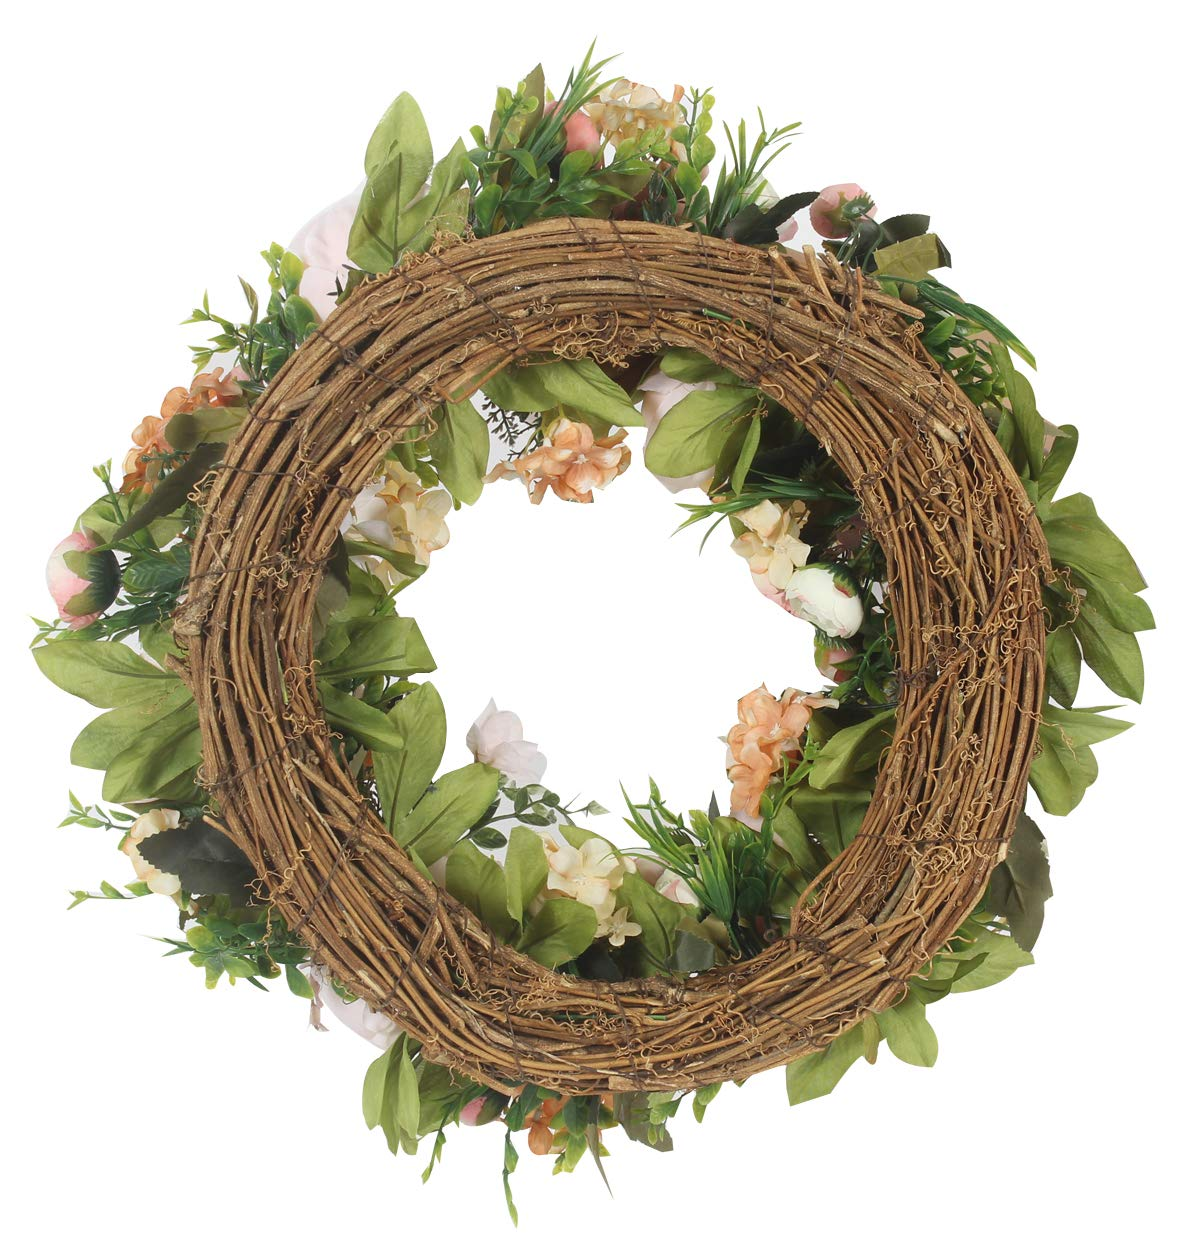 Duovlo Artificial Peony Flower Wreath Silk Wreath 20-Inch Beautiful Handcrafted Mix Flowers Front Porch Decoration